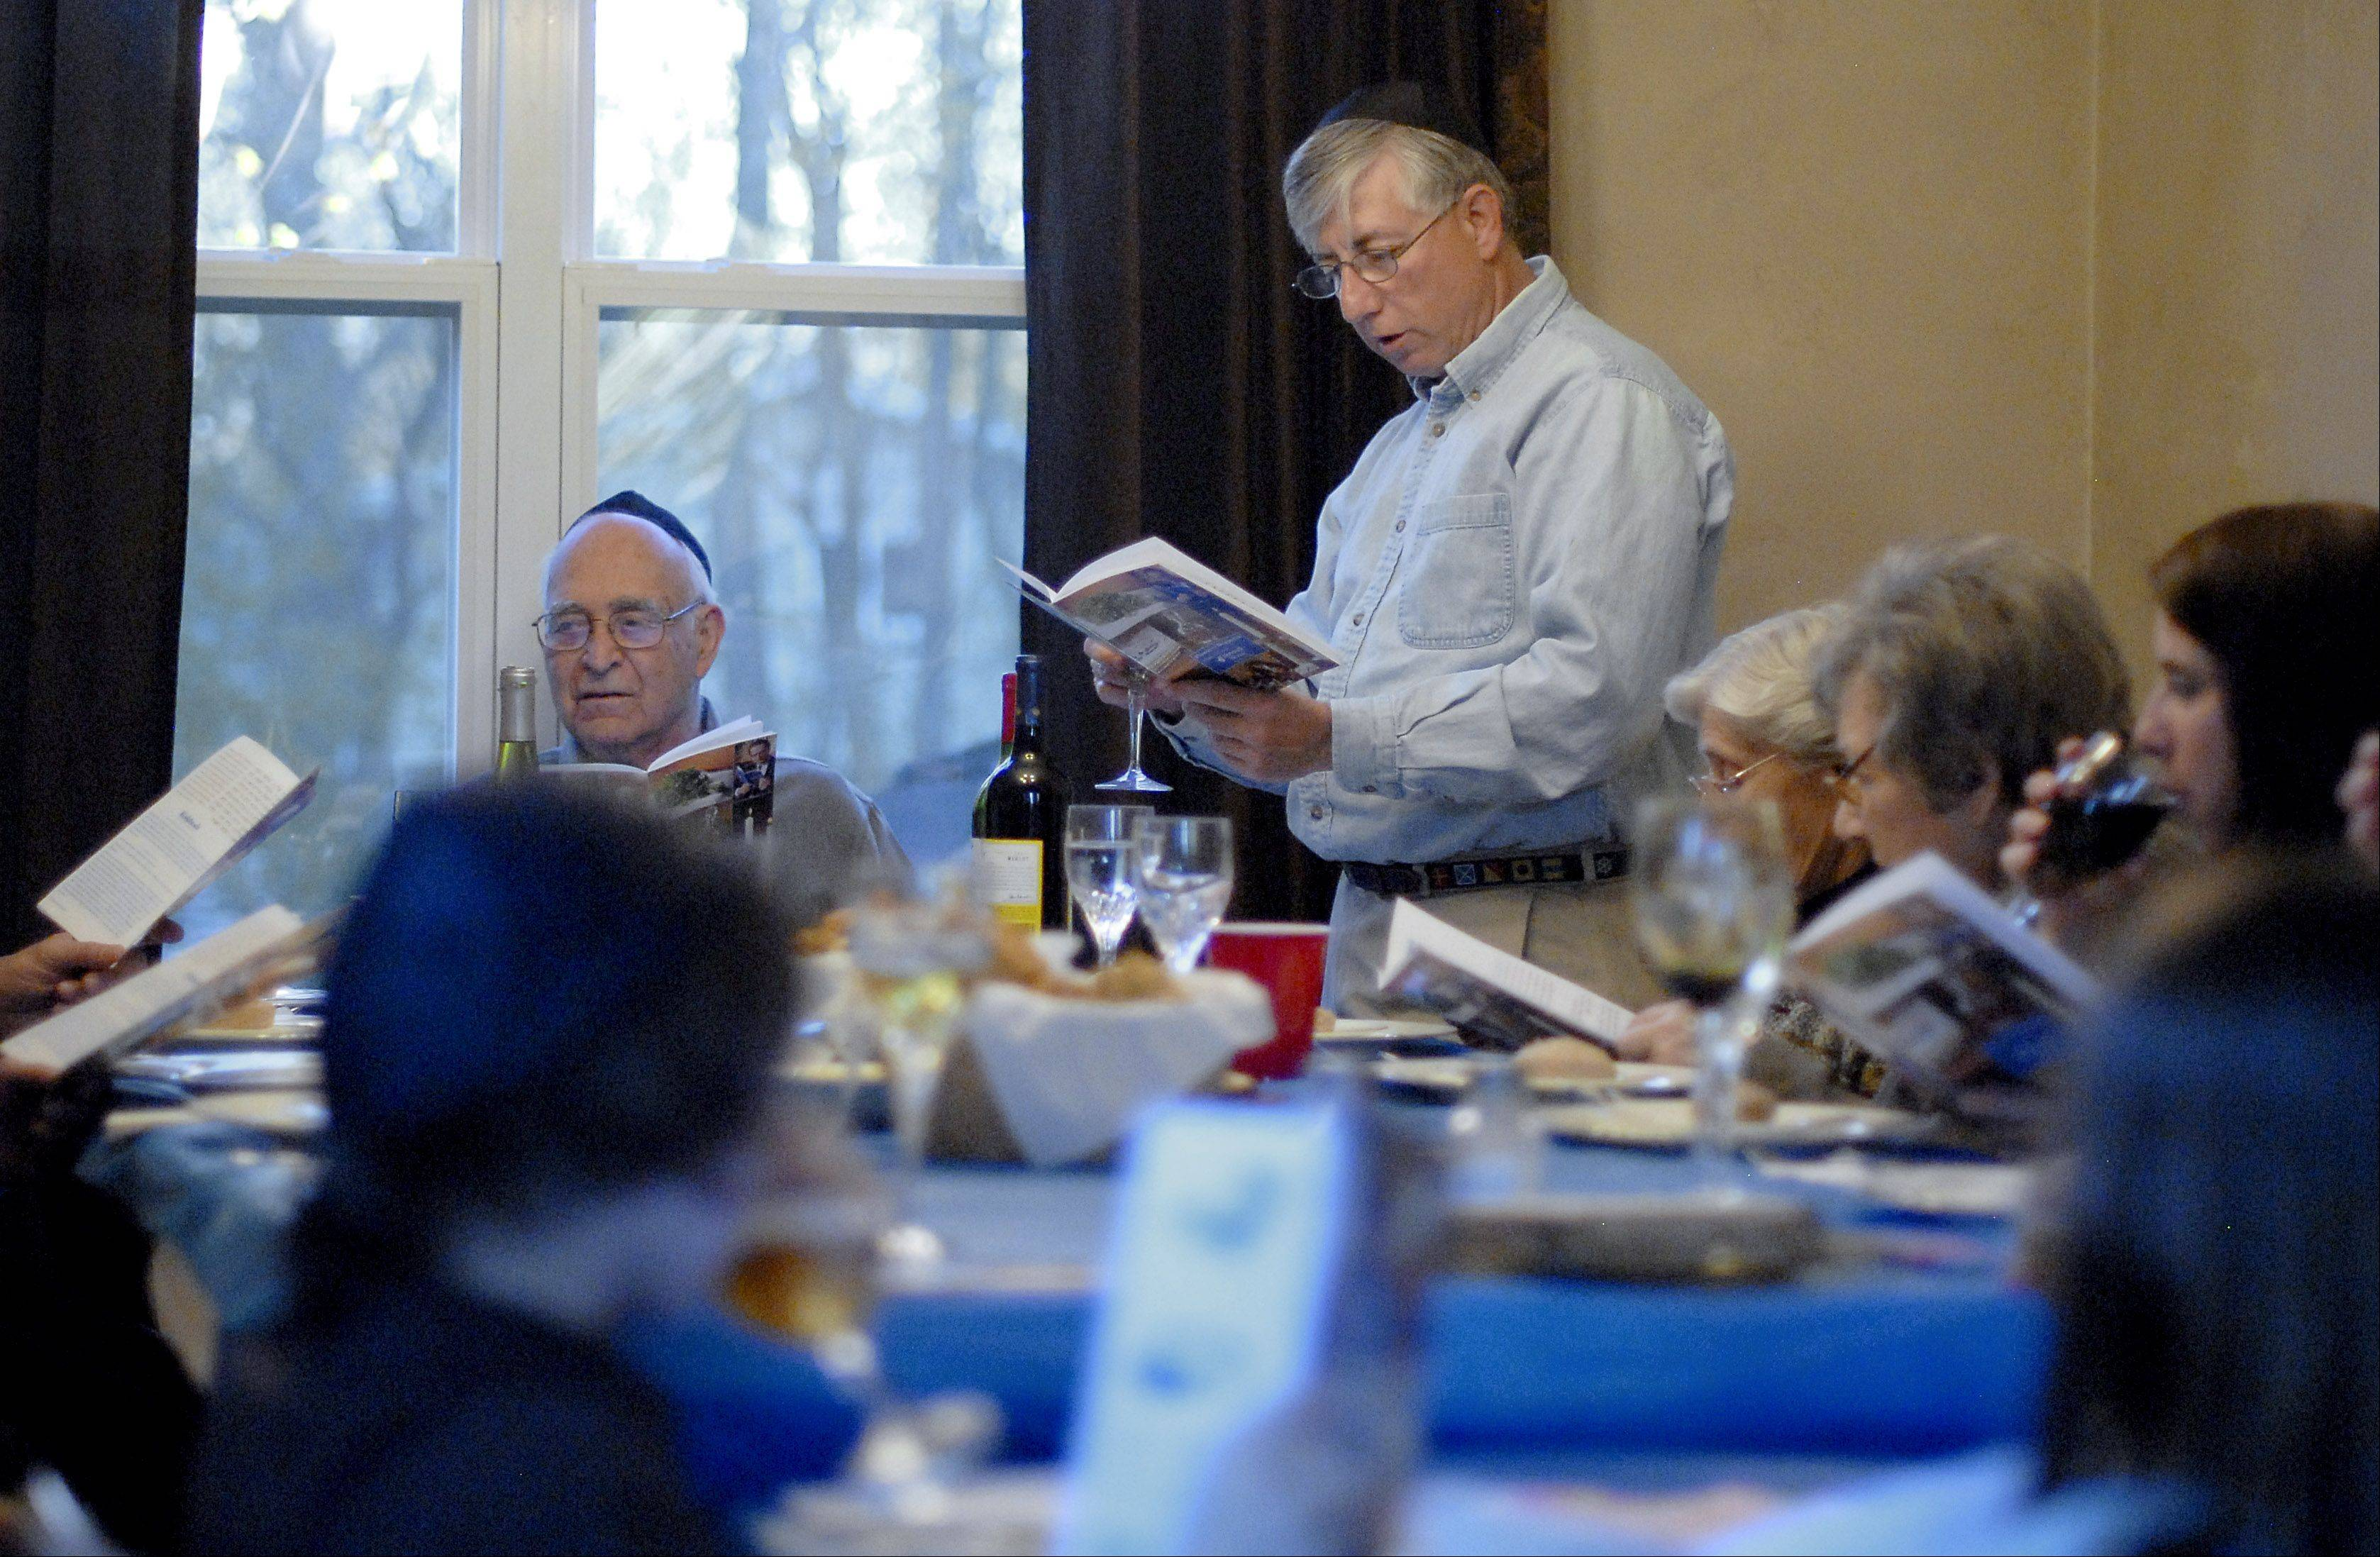 Chuck Fogel of Chicago reads from the Passover Haggada at his sister Barb Anderson's home in St. Charles on Friday. Anderson has been hosting the Seder for her family for the past 10 years.